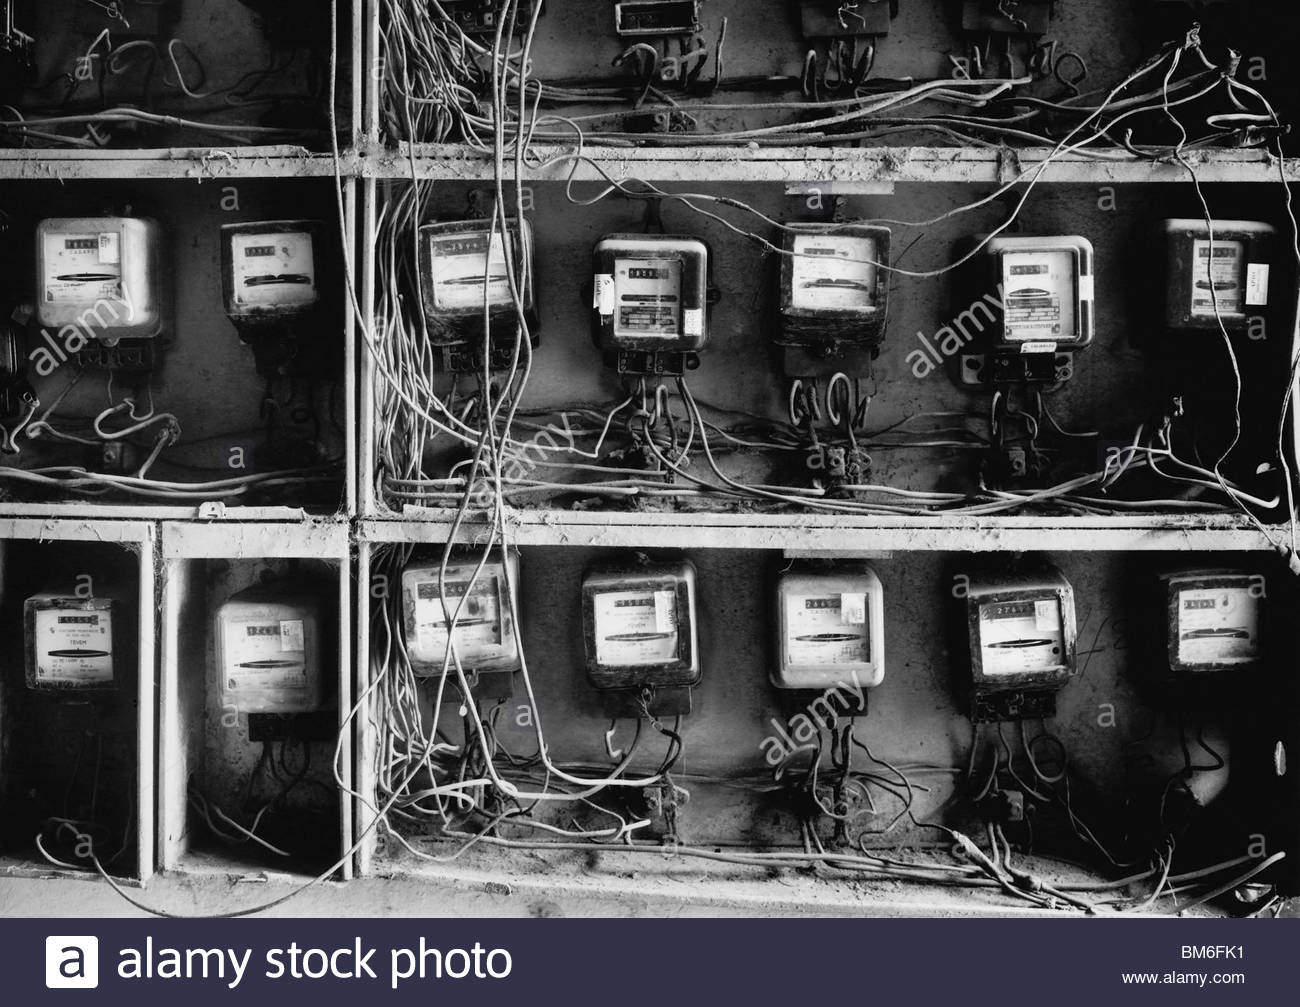 hight resolution of close up of wires and old fashioned meters stock image